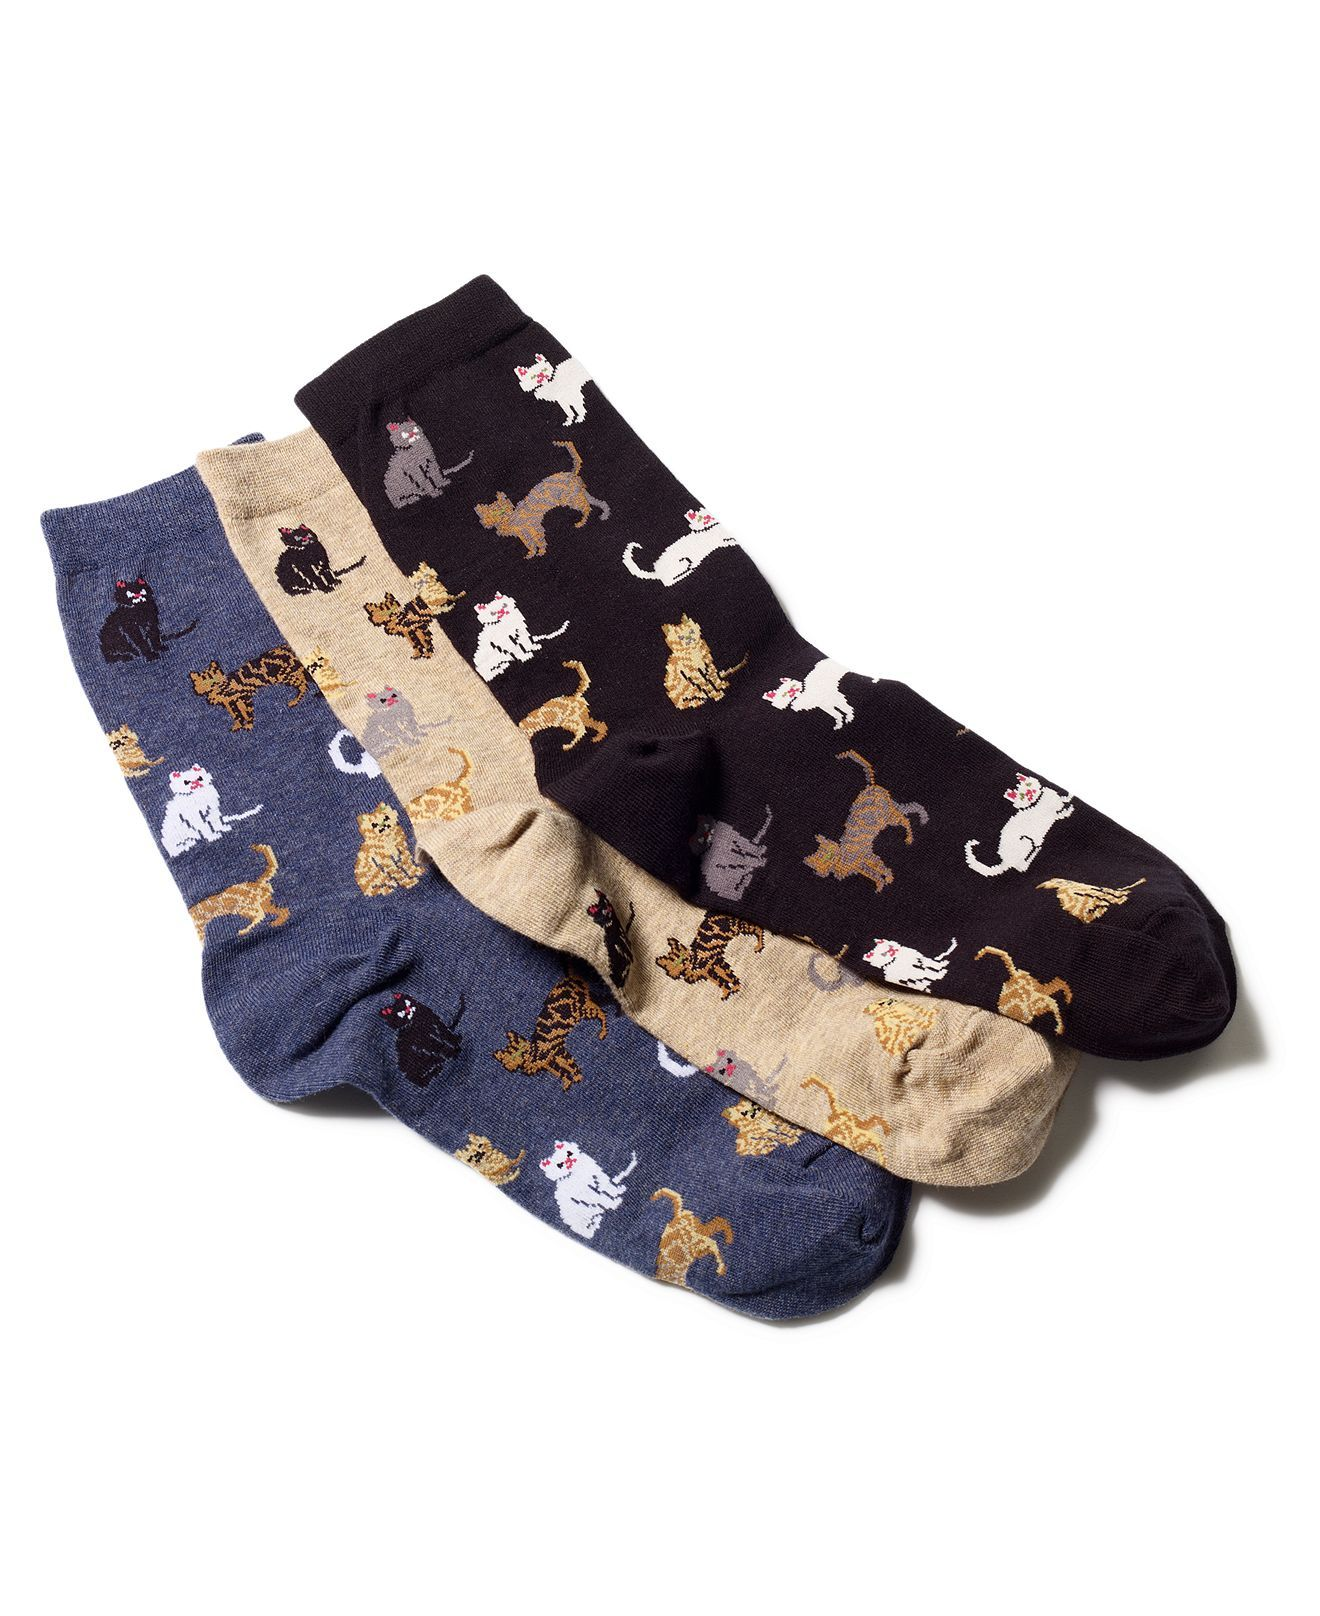 Hot Sox Womenus Cats Trouser Socks  Discover best ideas about